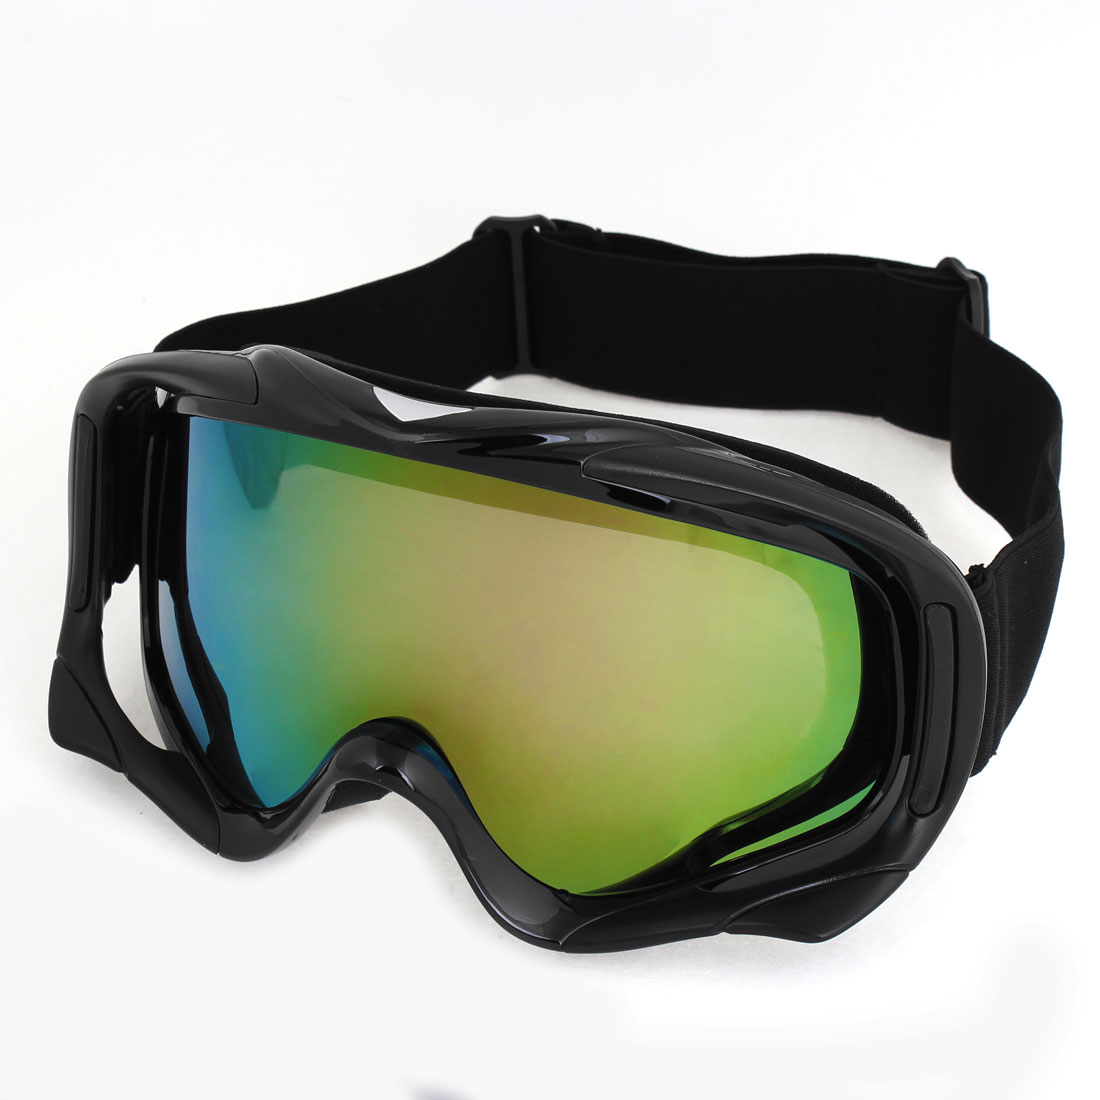 Outdoor Sports Colored Lens Black Full Rim Ski Goggles for Men Woman by Unique-Bargains